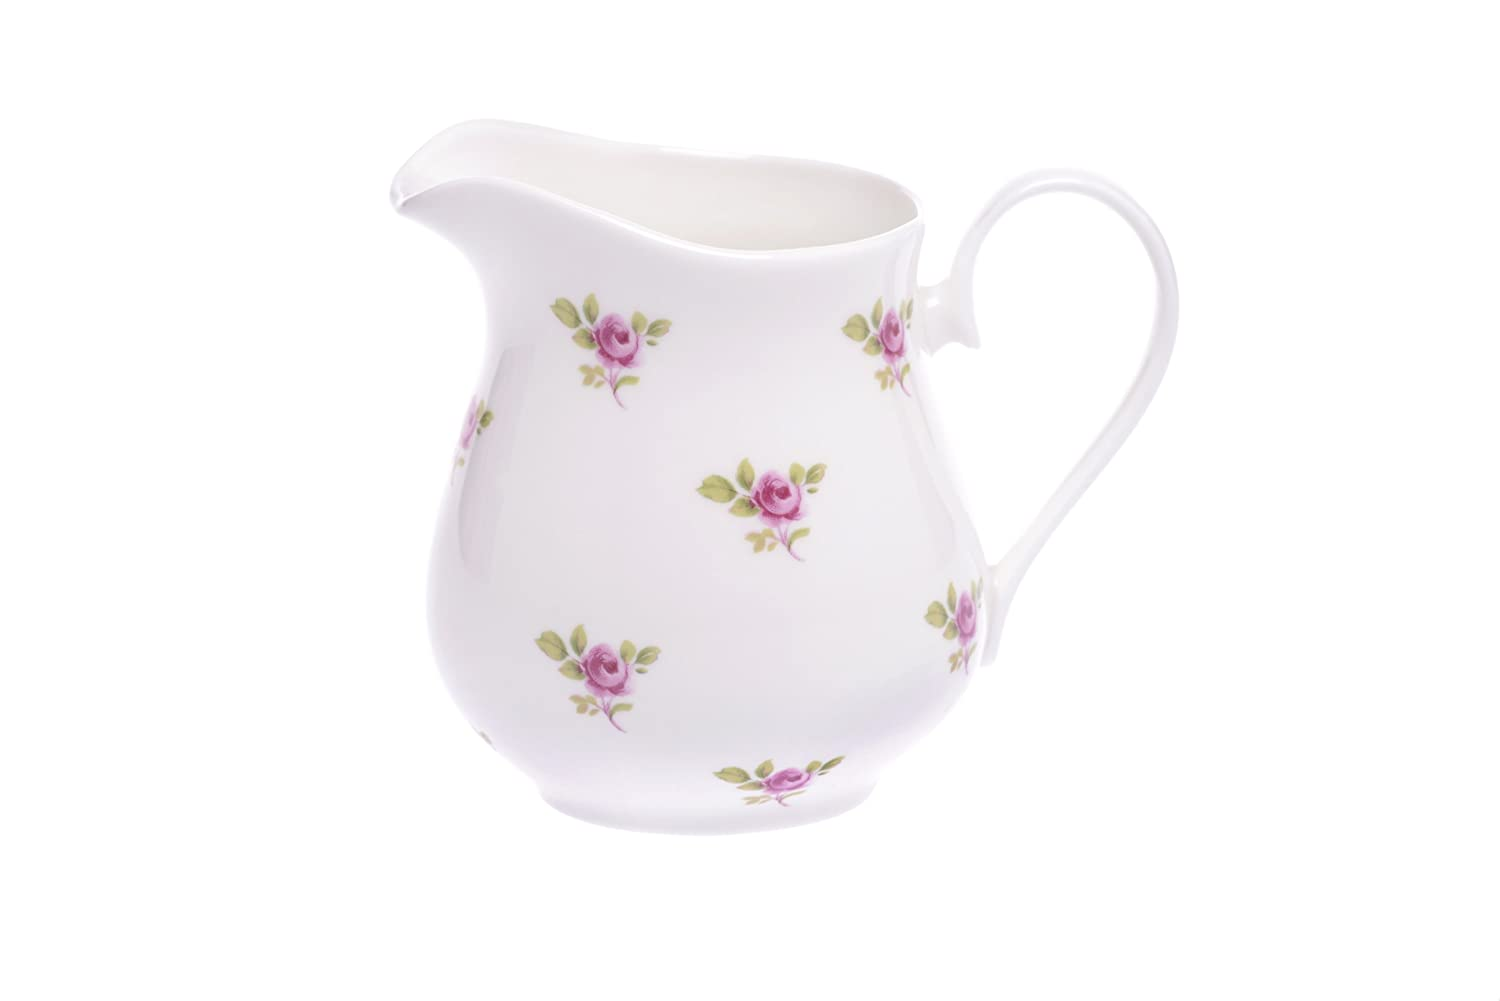 Bone China 1/2 PINT MILK JUG- DOT ROSE Kirsty Jayne China- Hand decorated in the Potteries, Staffordshire, England.